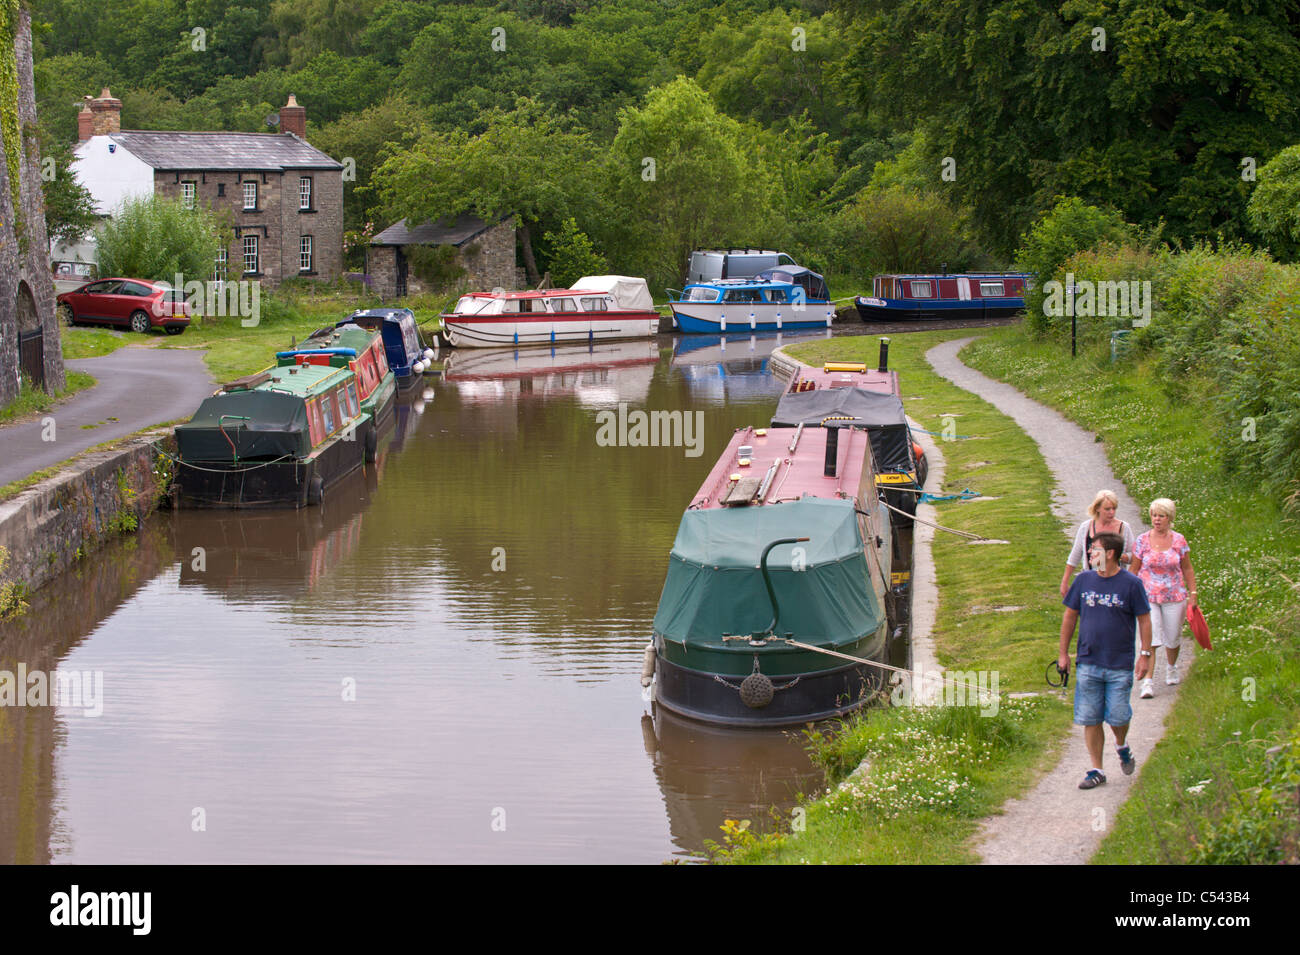 Walkers walking towpath on Monmouthshire and Brecon Canal near village of Llangattock Powys South Wales UK - Stock Image